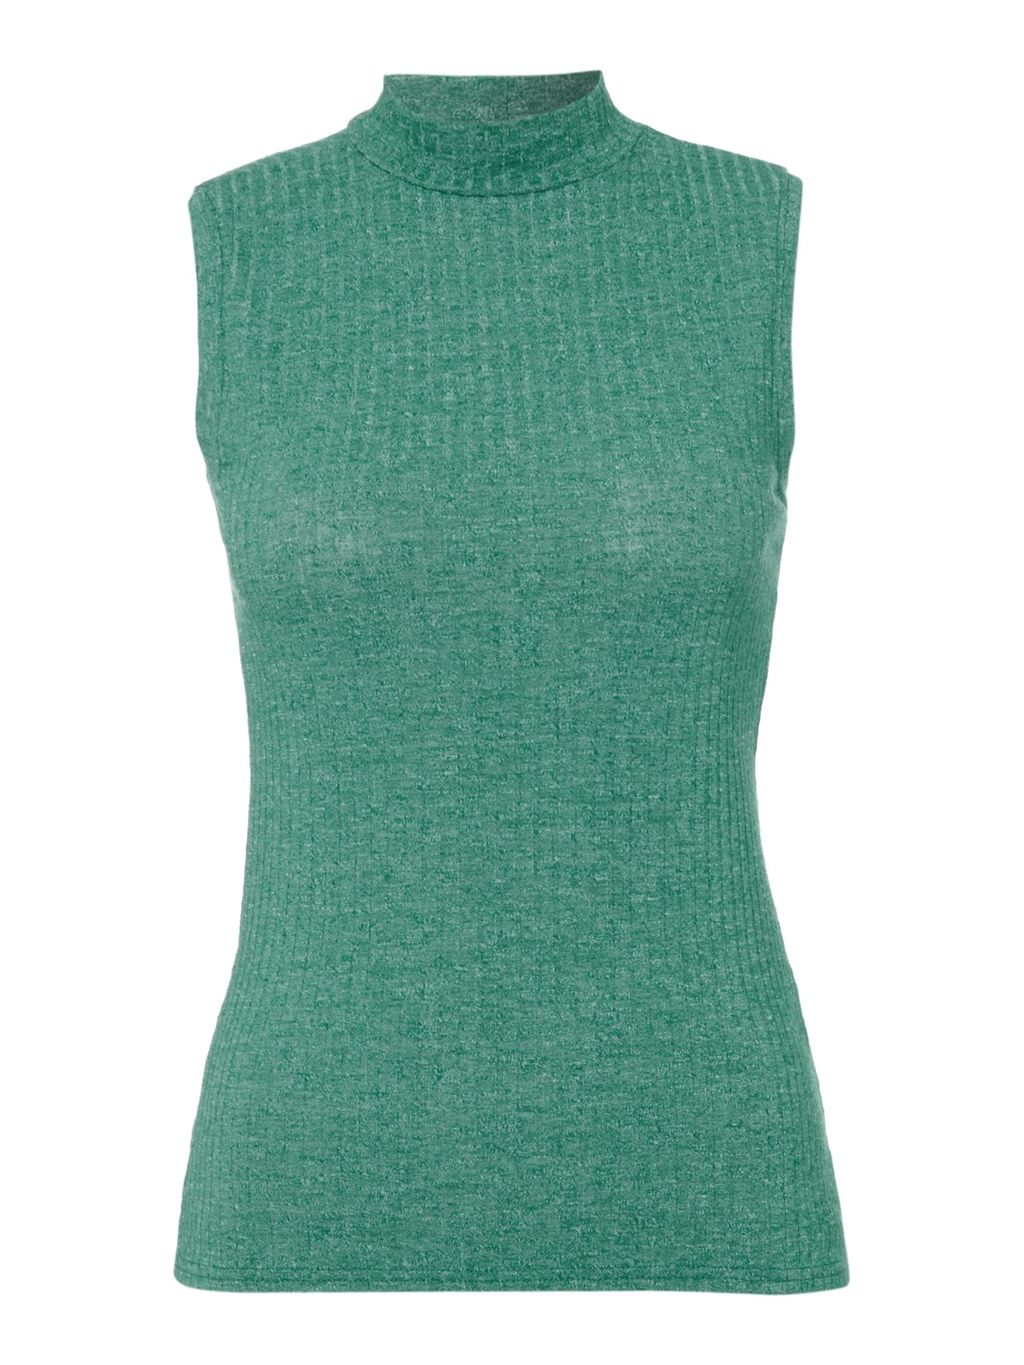 Tilly Turtle Neck Sleeveless Top, Green - pattern: plain; sleeve style: sleeveless; neckline: roll neck; predominant colour: emerald green; occasions: casual; length: standard; style: top; fibres: polyester/polyamide - stretch; fit: body skimming; sleeve length: sleeveless; texture group: jersey - clingy; pattern type: fabric; season: s/s 2016